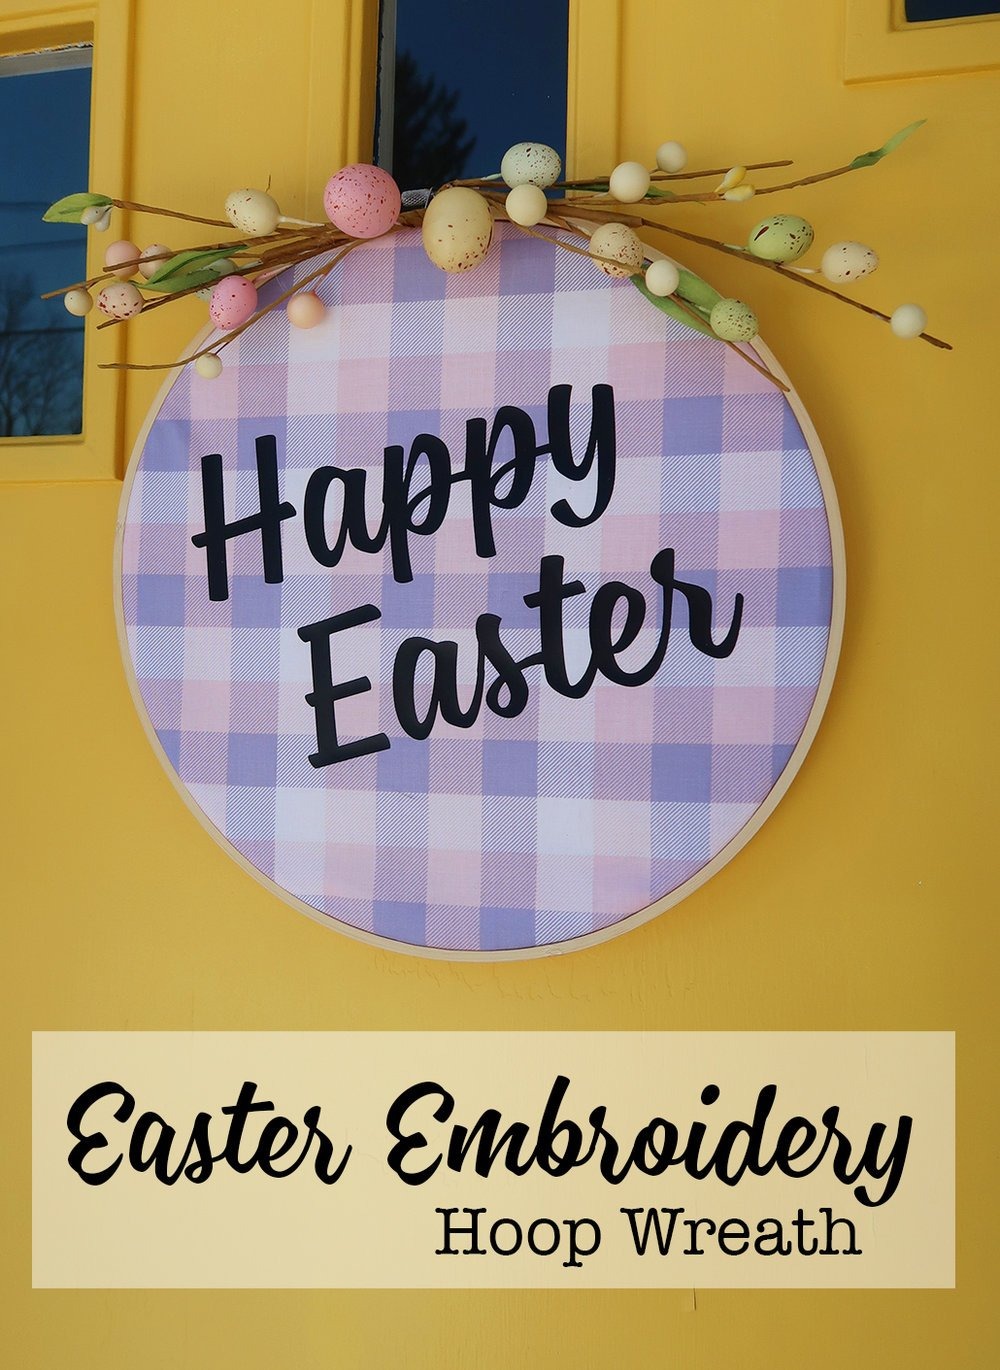 Easter Embroidery Hoop Wreath